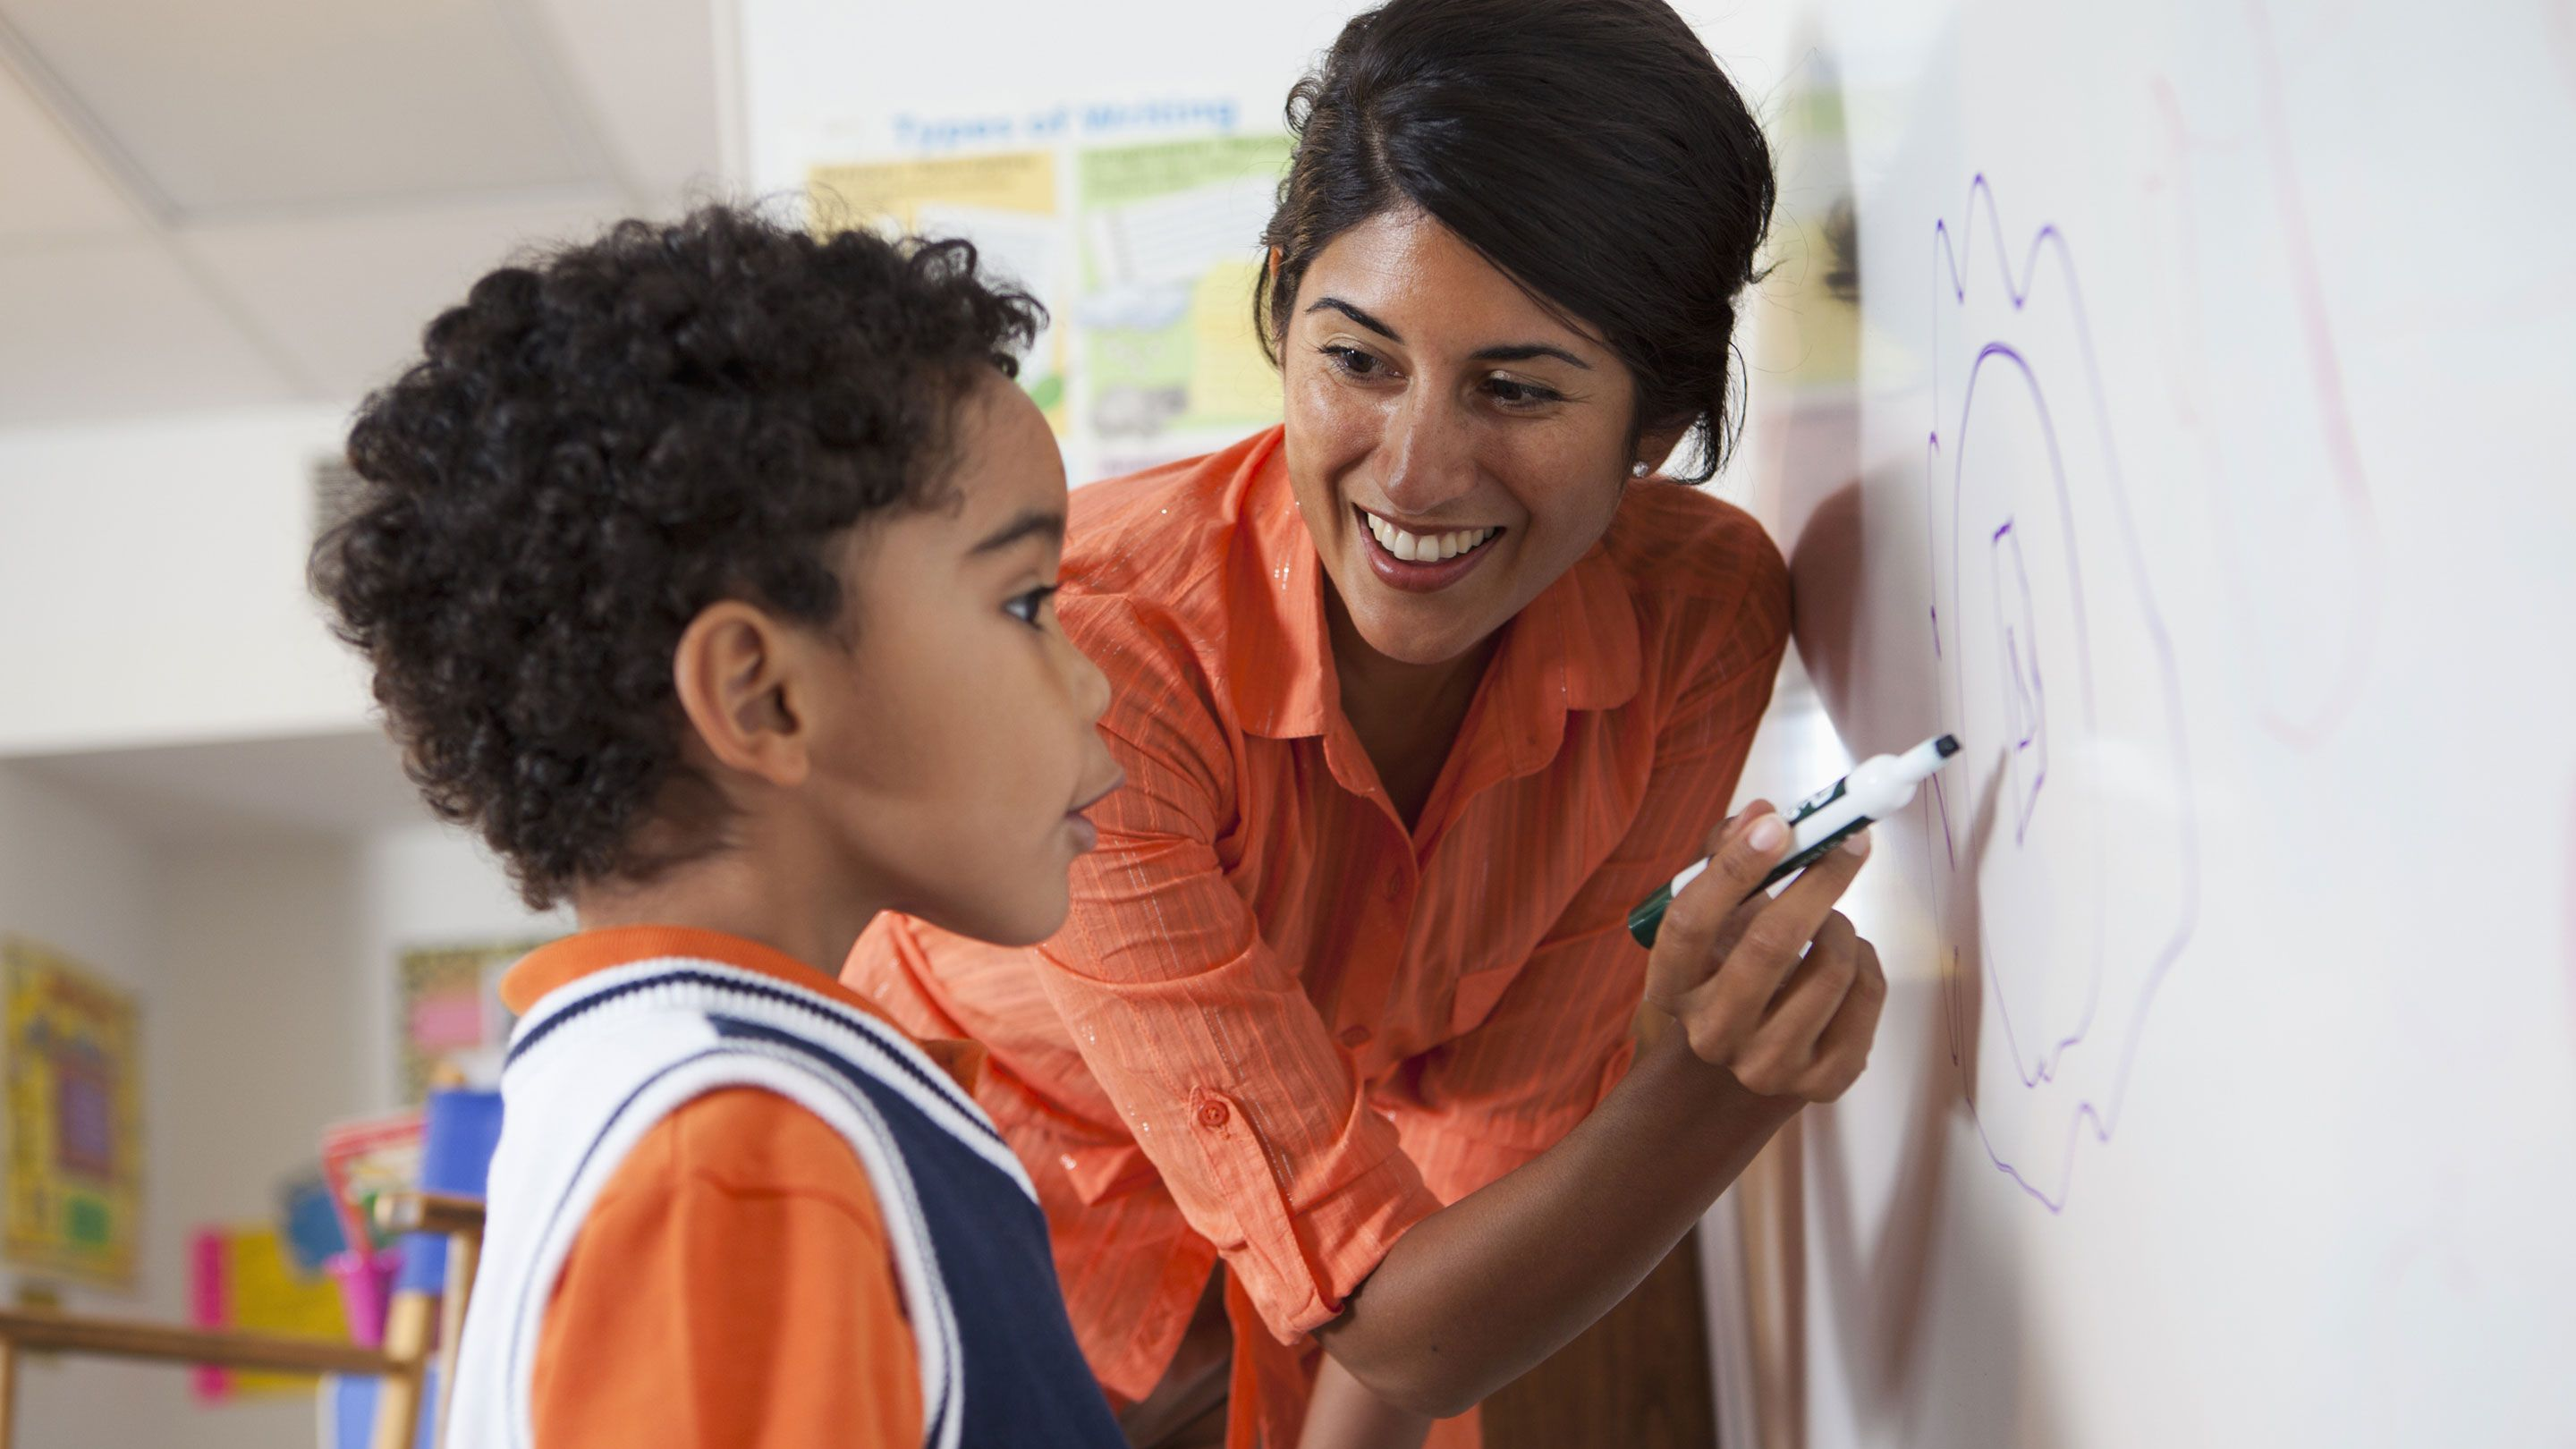 A teacher works at the white board with a young boy.